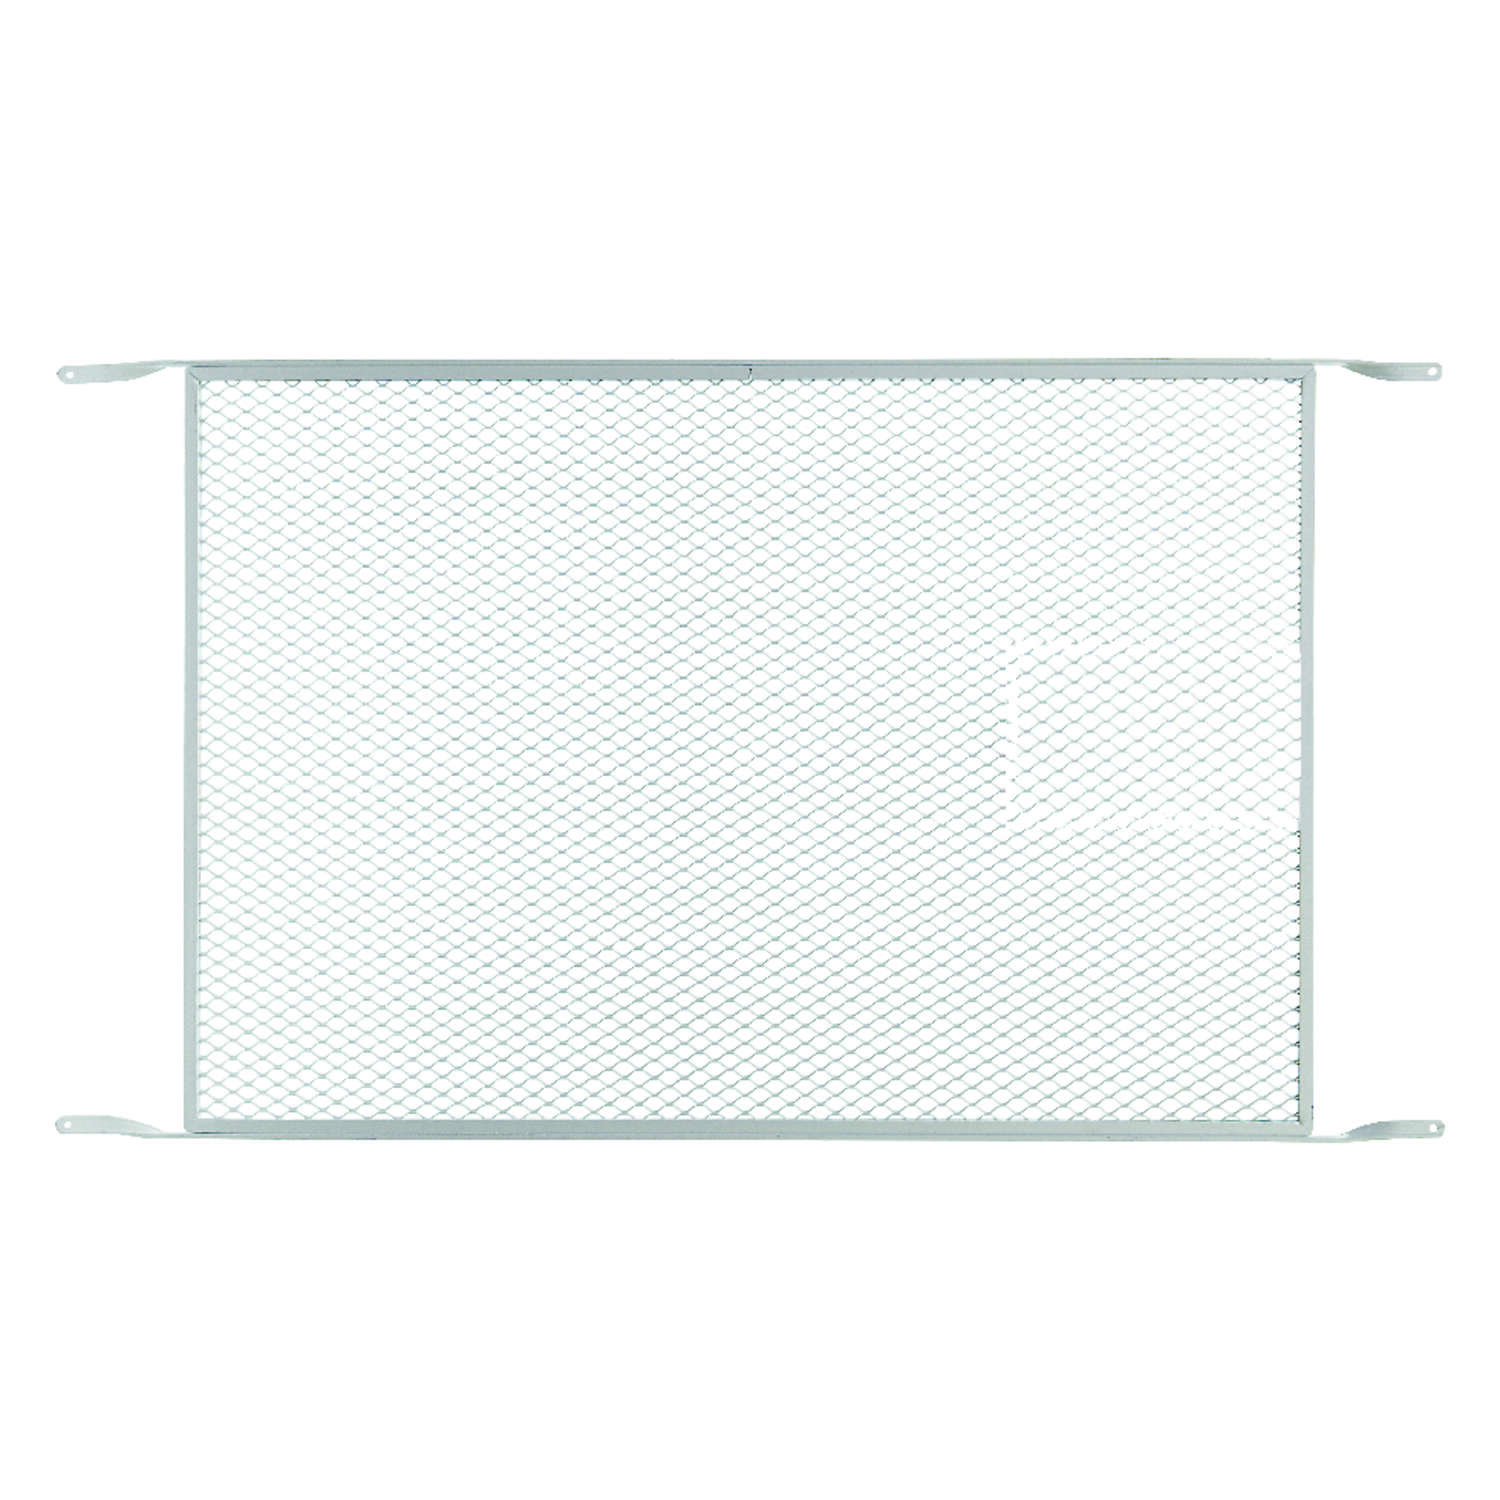 M-D Building Products White Aluminum 1 pc. Door Grille